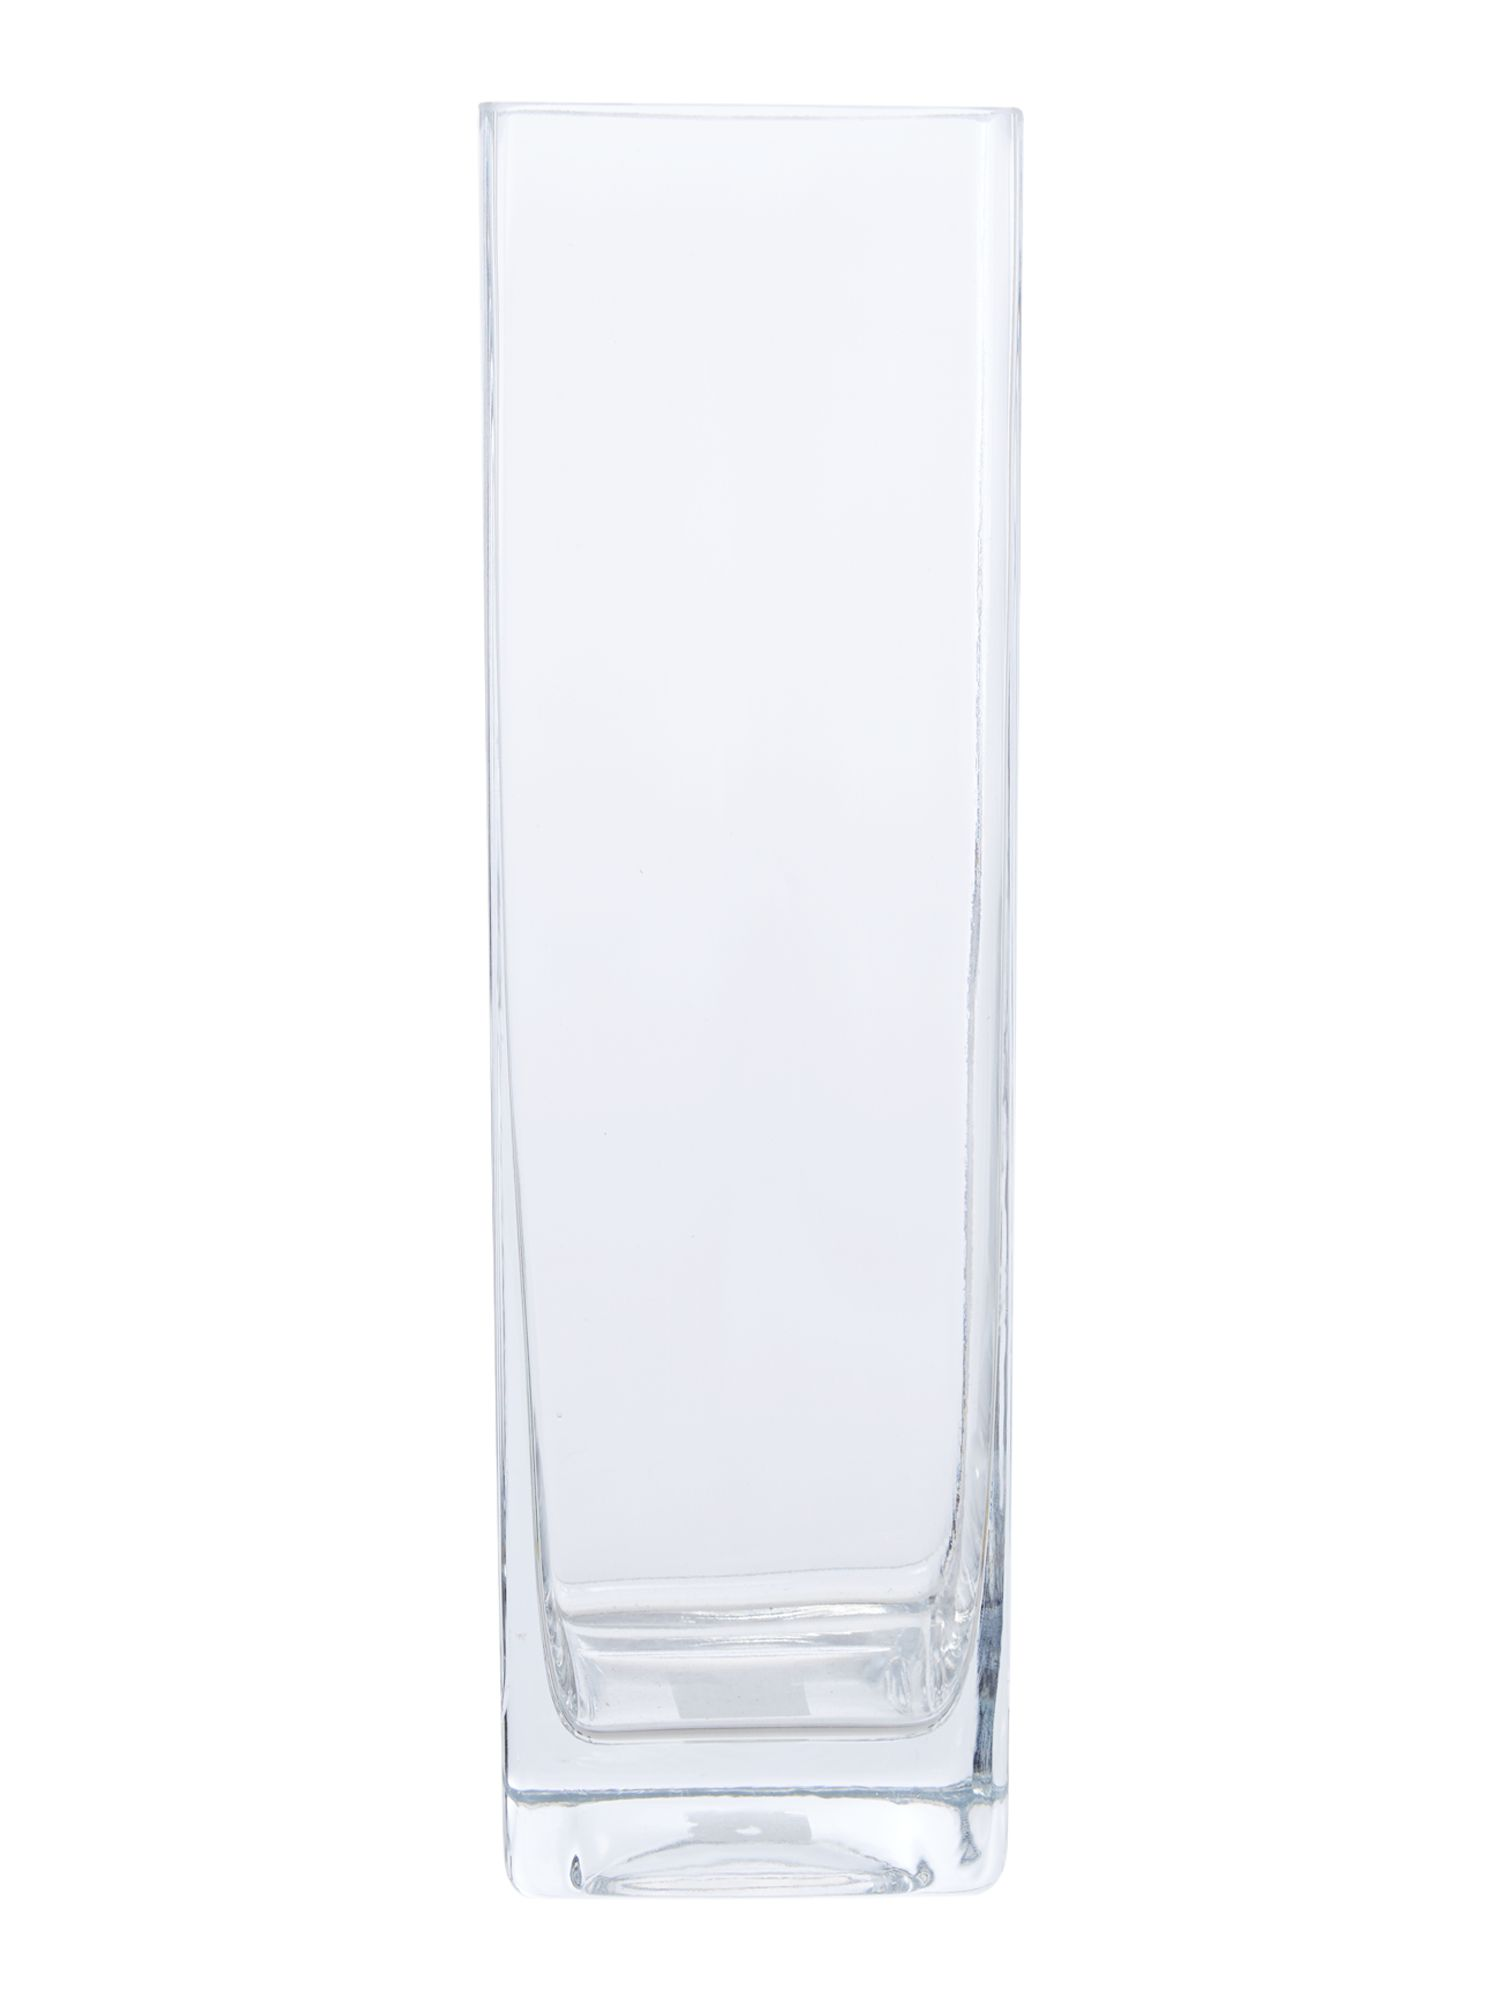 Rectangular, clear 35cm